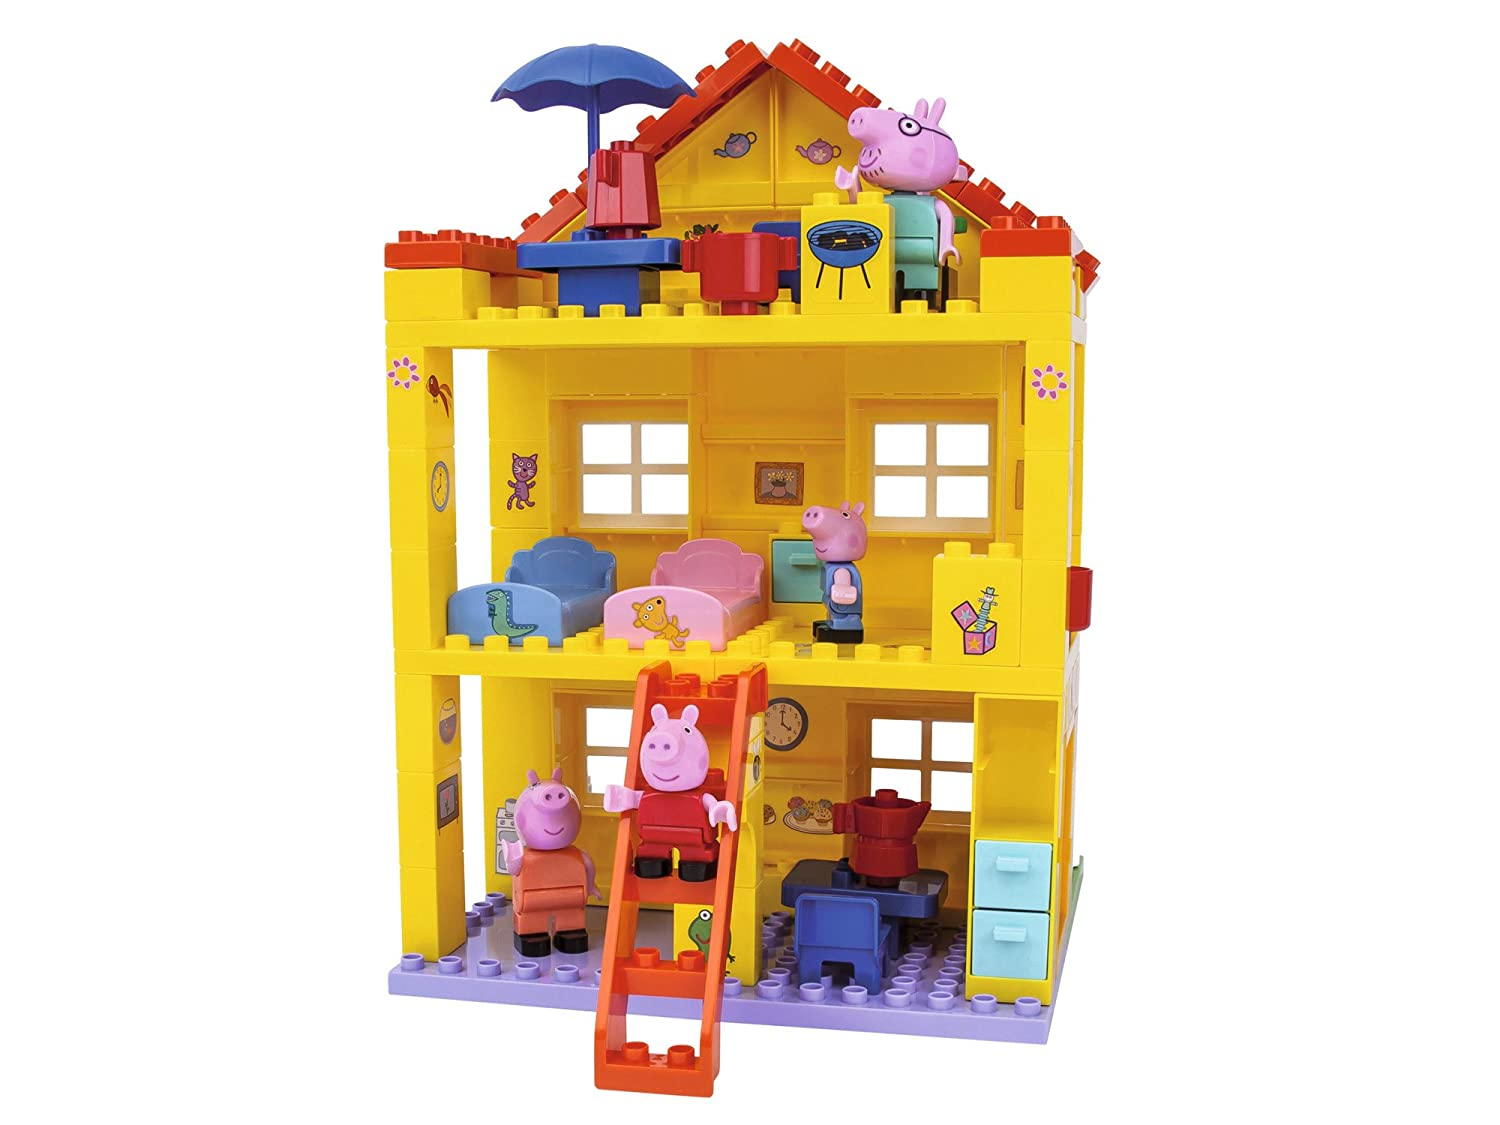 BIG Spielwarenfabrik BIG 57078 - PlayBIG Bloxx Peppa Pig Haus 800057078